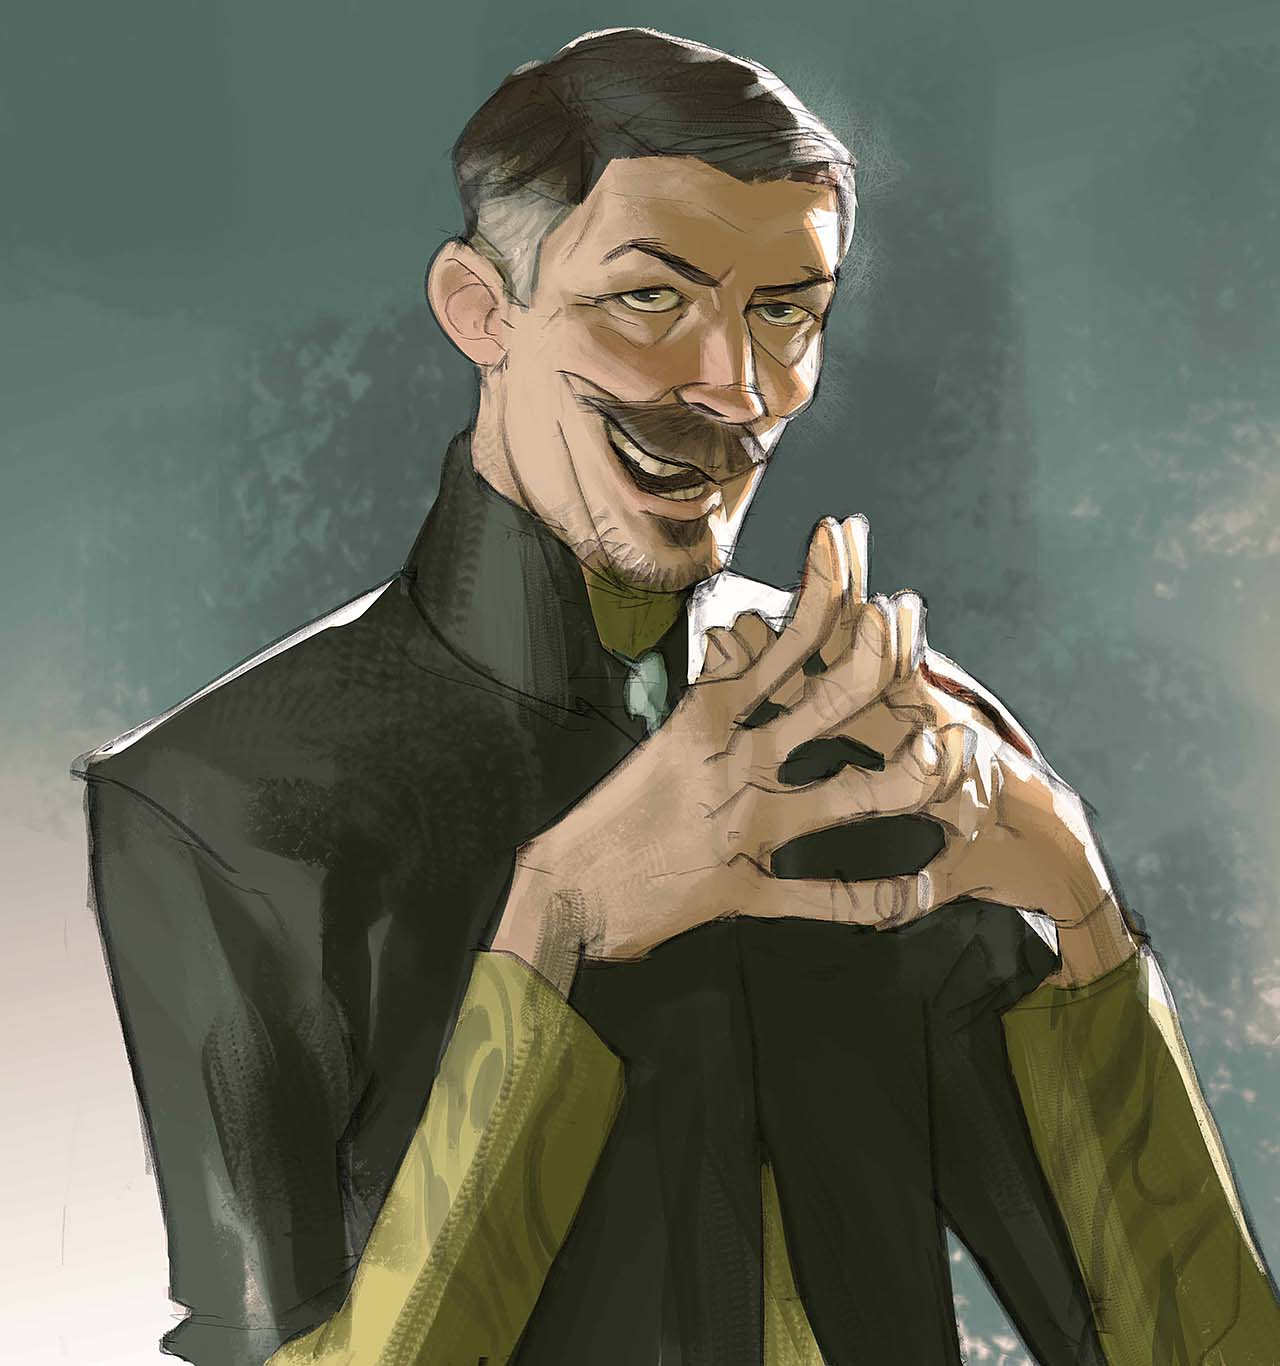 Artist Creates Unique Character Arts From Game Of Thrones – Petyr Baelish (Little Finger)Character Art By Ramón Nuñez